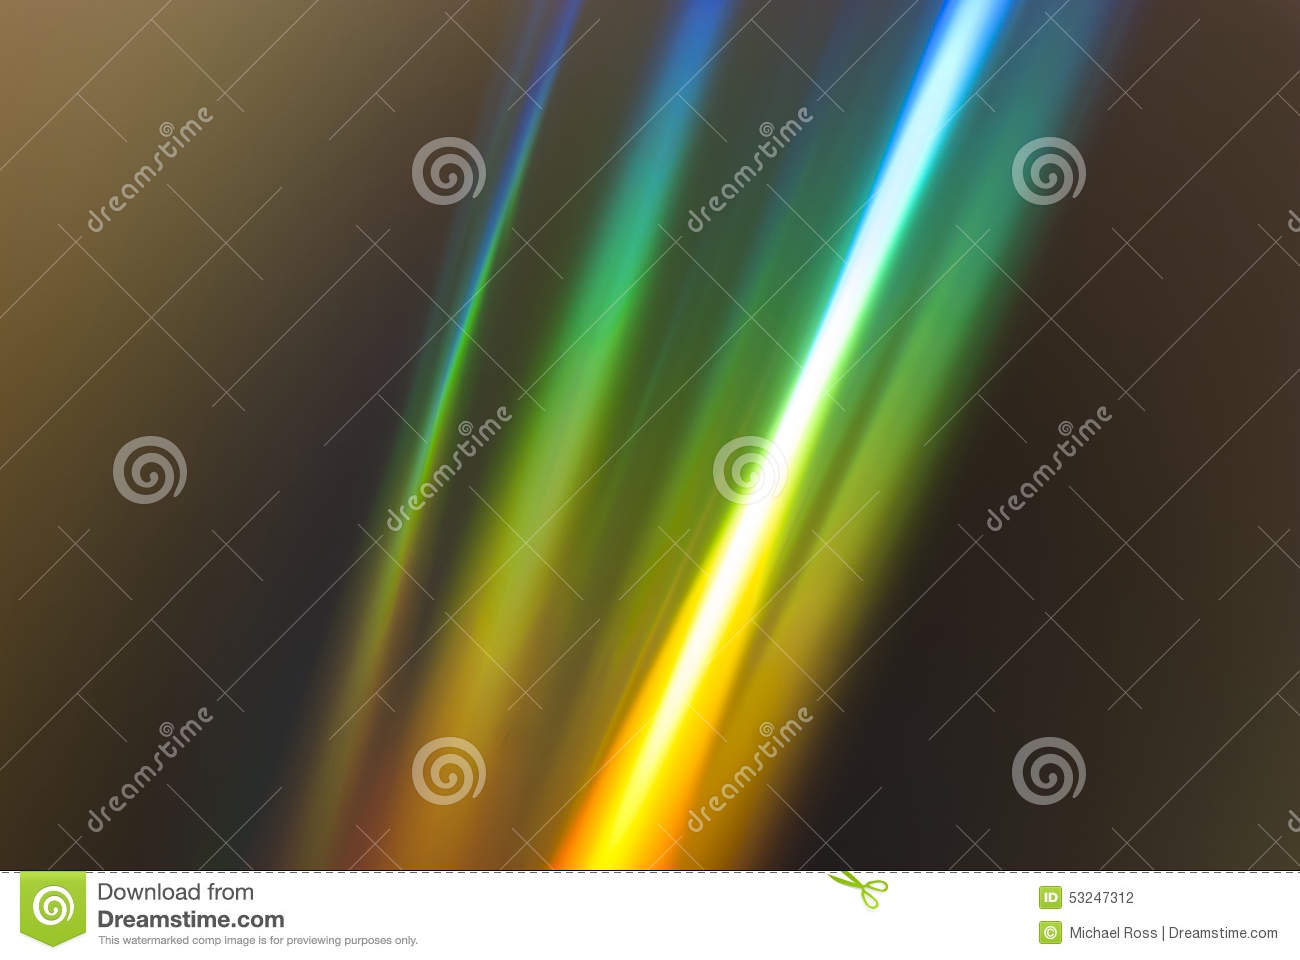 Rainbow Notes On Light Background Stock: Rainbow Light Refraction On A CD Stock Photo